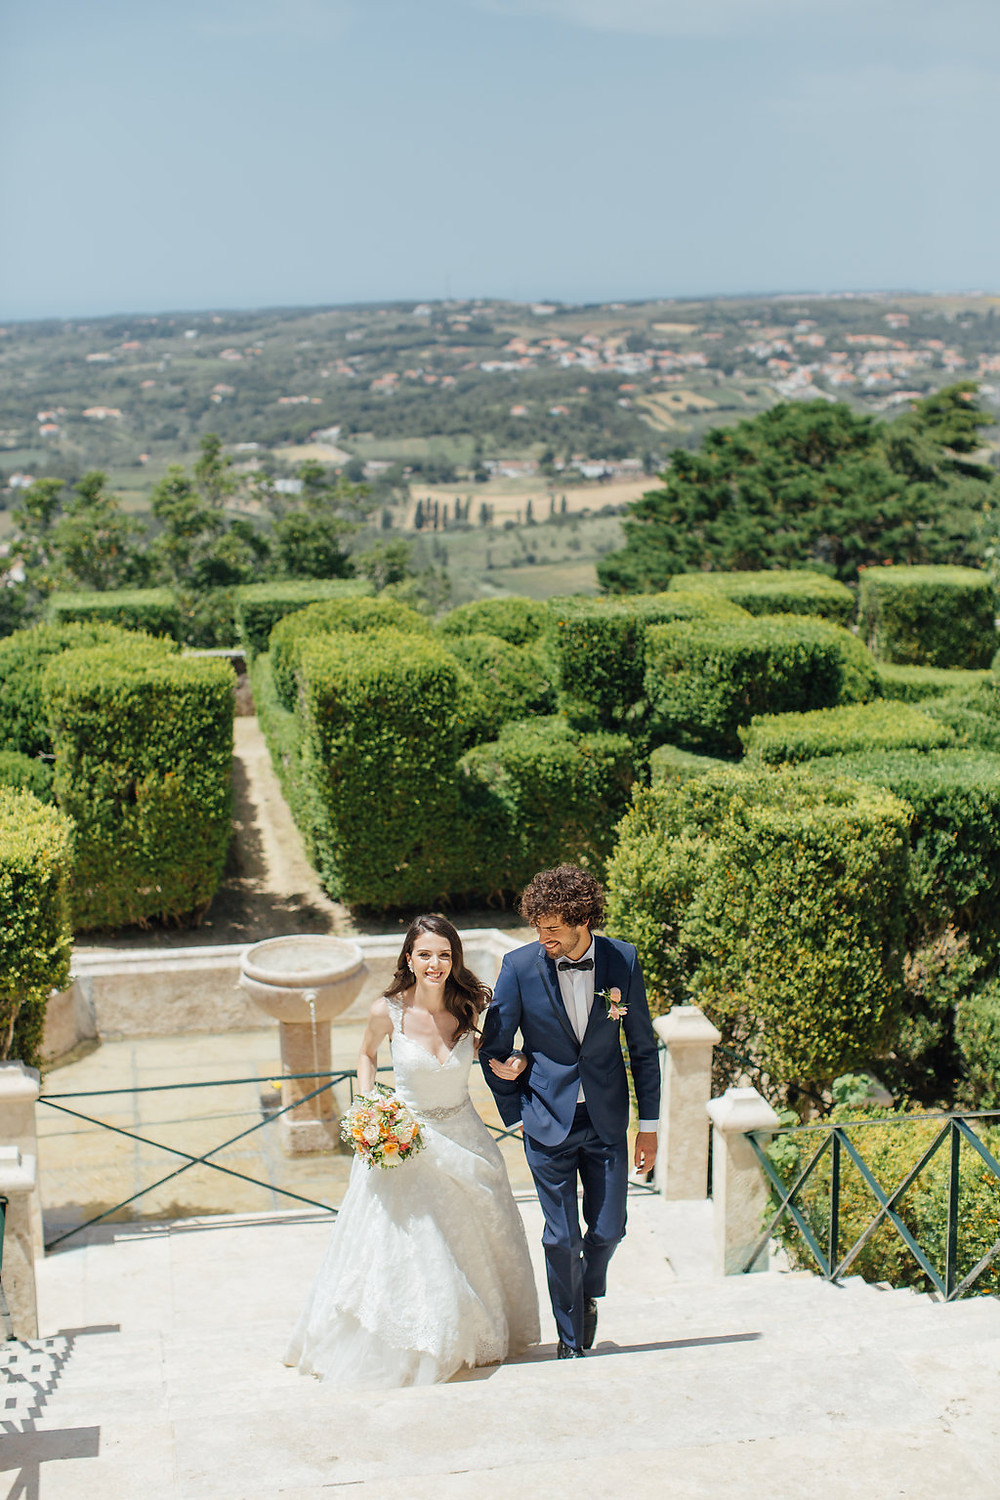 Lisbon's wedding venues: Seteais Palace in Sintra